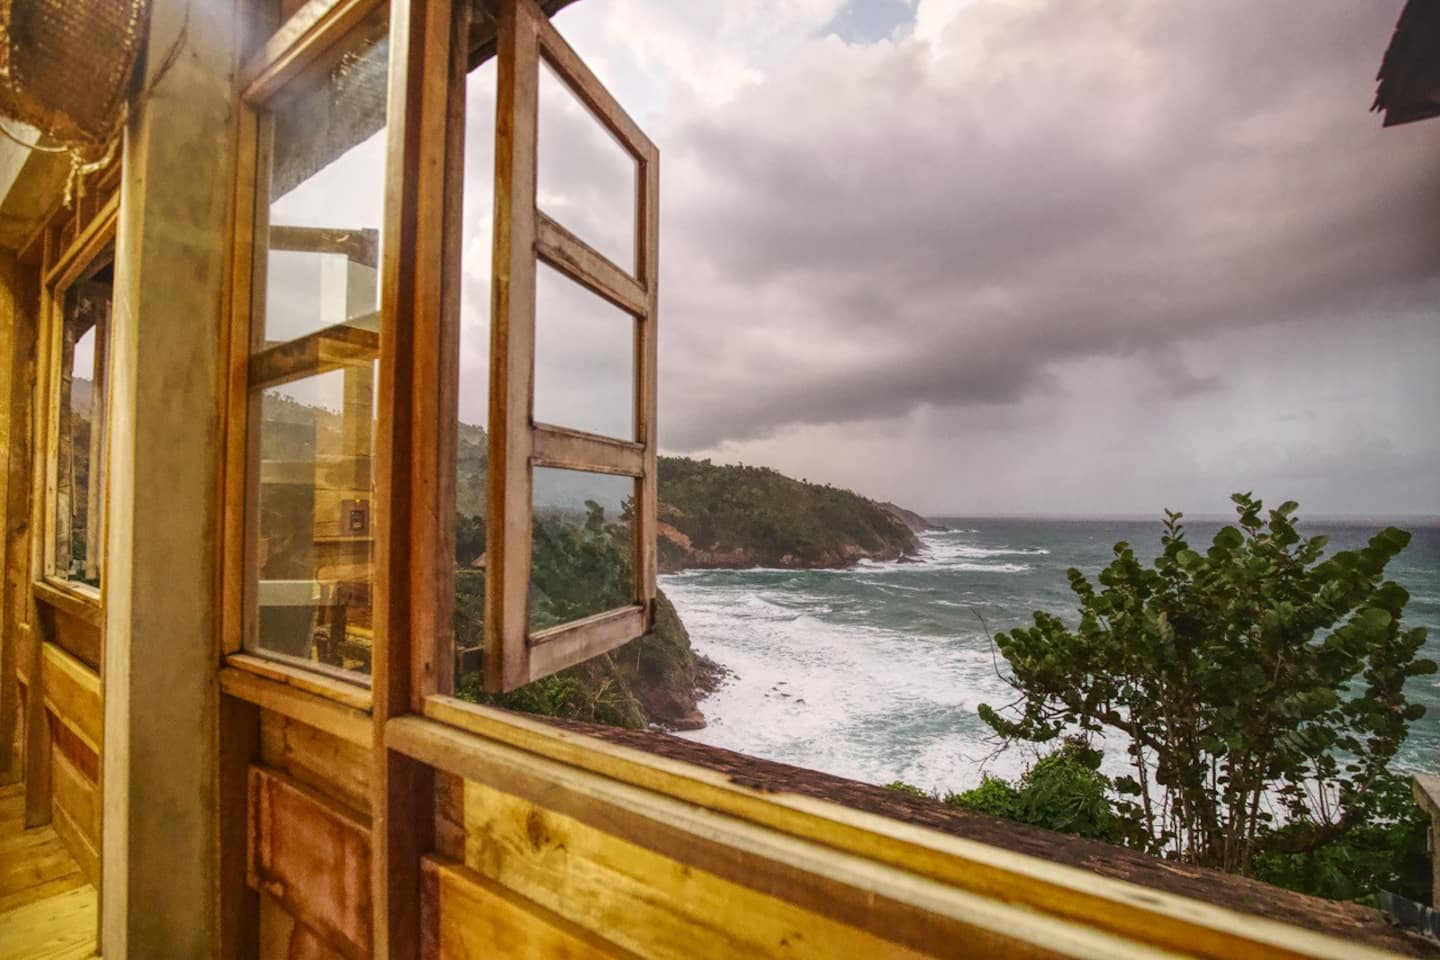 Breathtaking view of the ocean from the window of Villa Ayahora